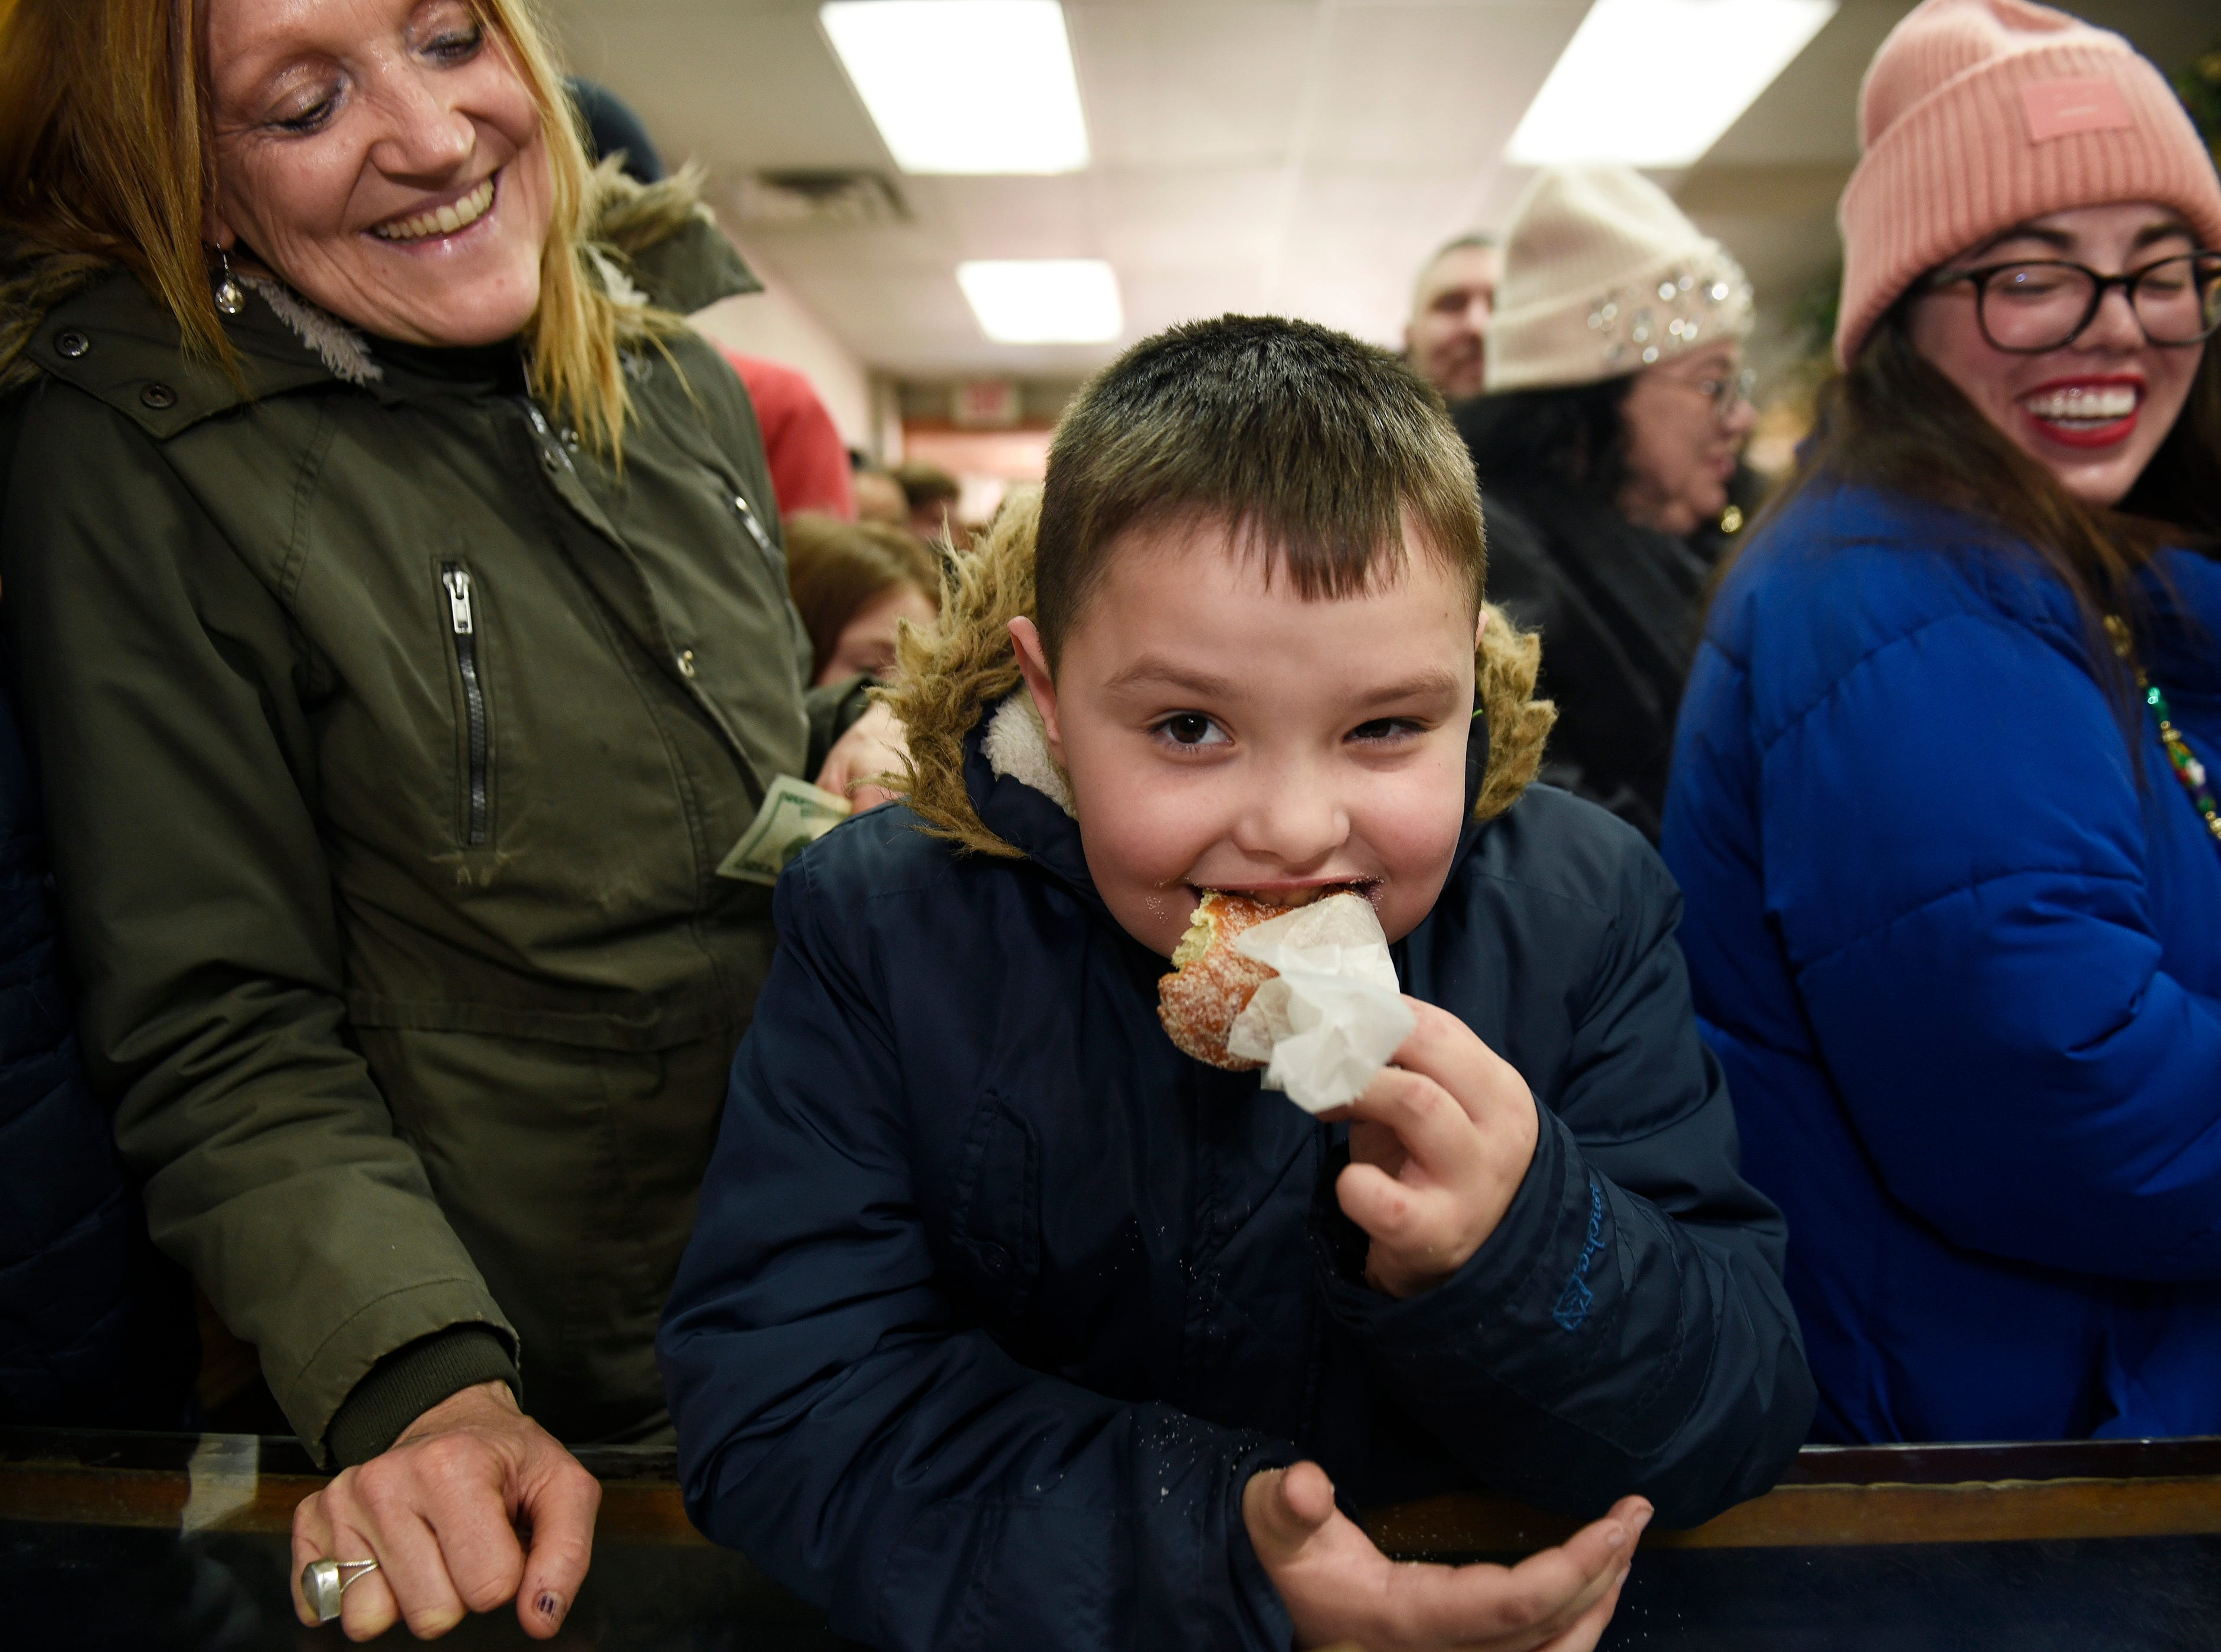 Landon Taylor, 8, of Flat Rock takes a bite of his plain sugar paczek as his grandmother Margaret Gonzalez, (l), and Melissa Schaf of Taylor looks on at New Martha Washington Bakery.